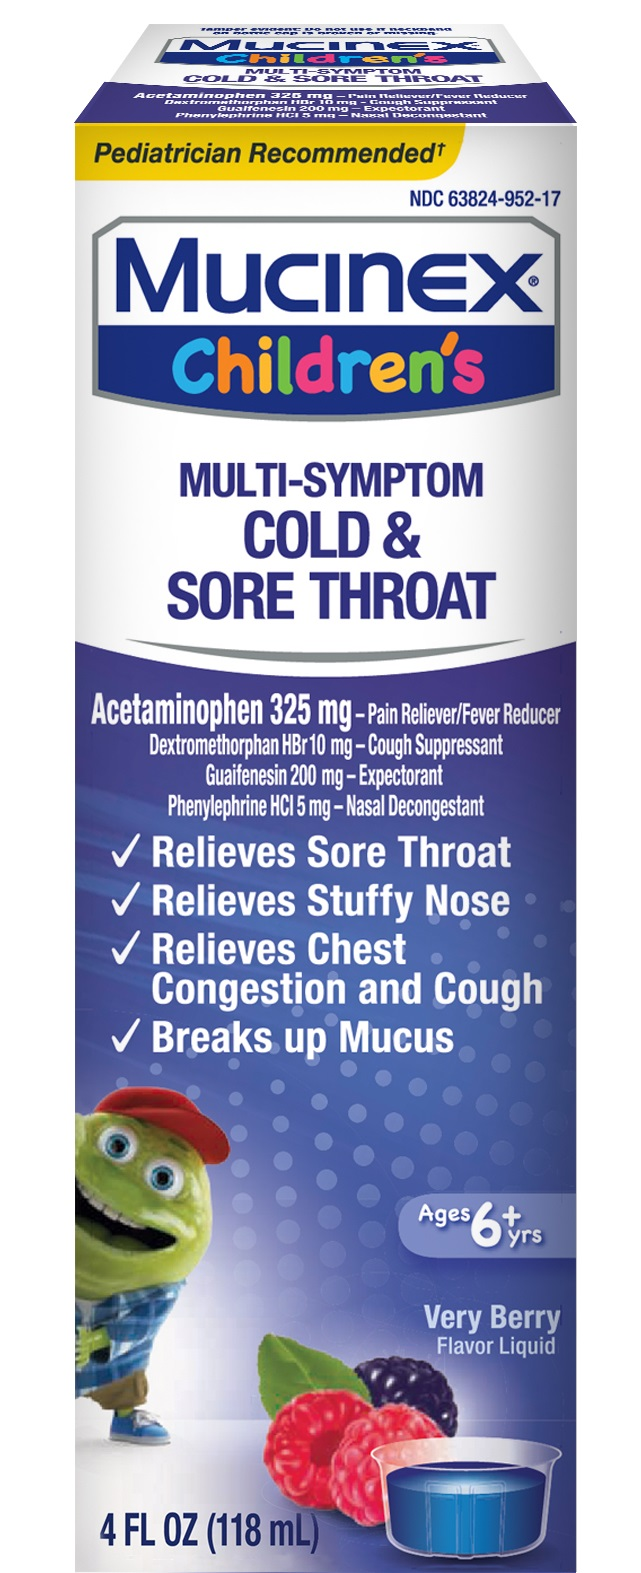 MUCINEX® Children's Multi-Symptom Cold & Sore Throat - Very Berry